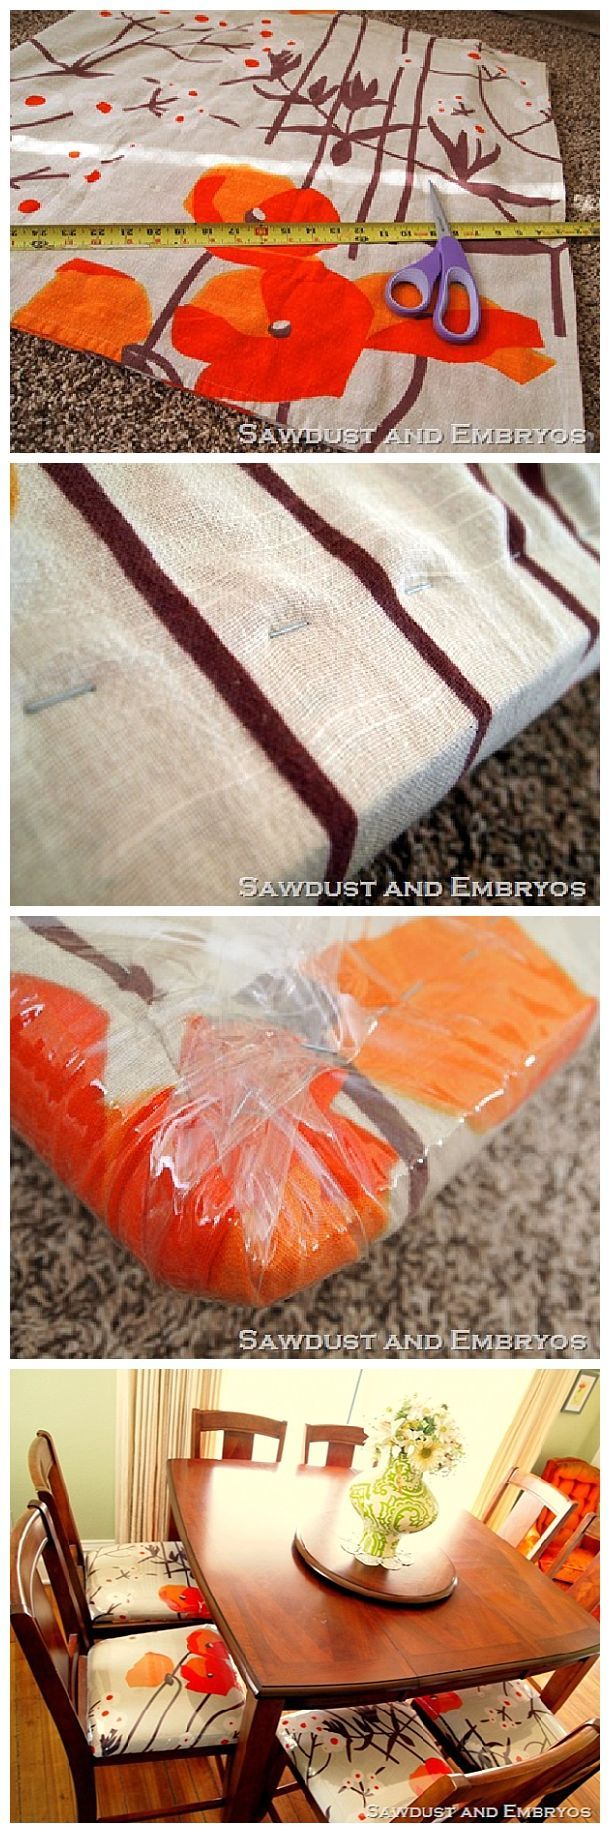 best 25 fabric dining room chairs ideas on pinterest how to upholster fabric dining room chairs and add plastic to make them waterproof and